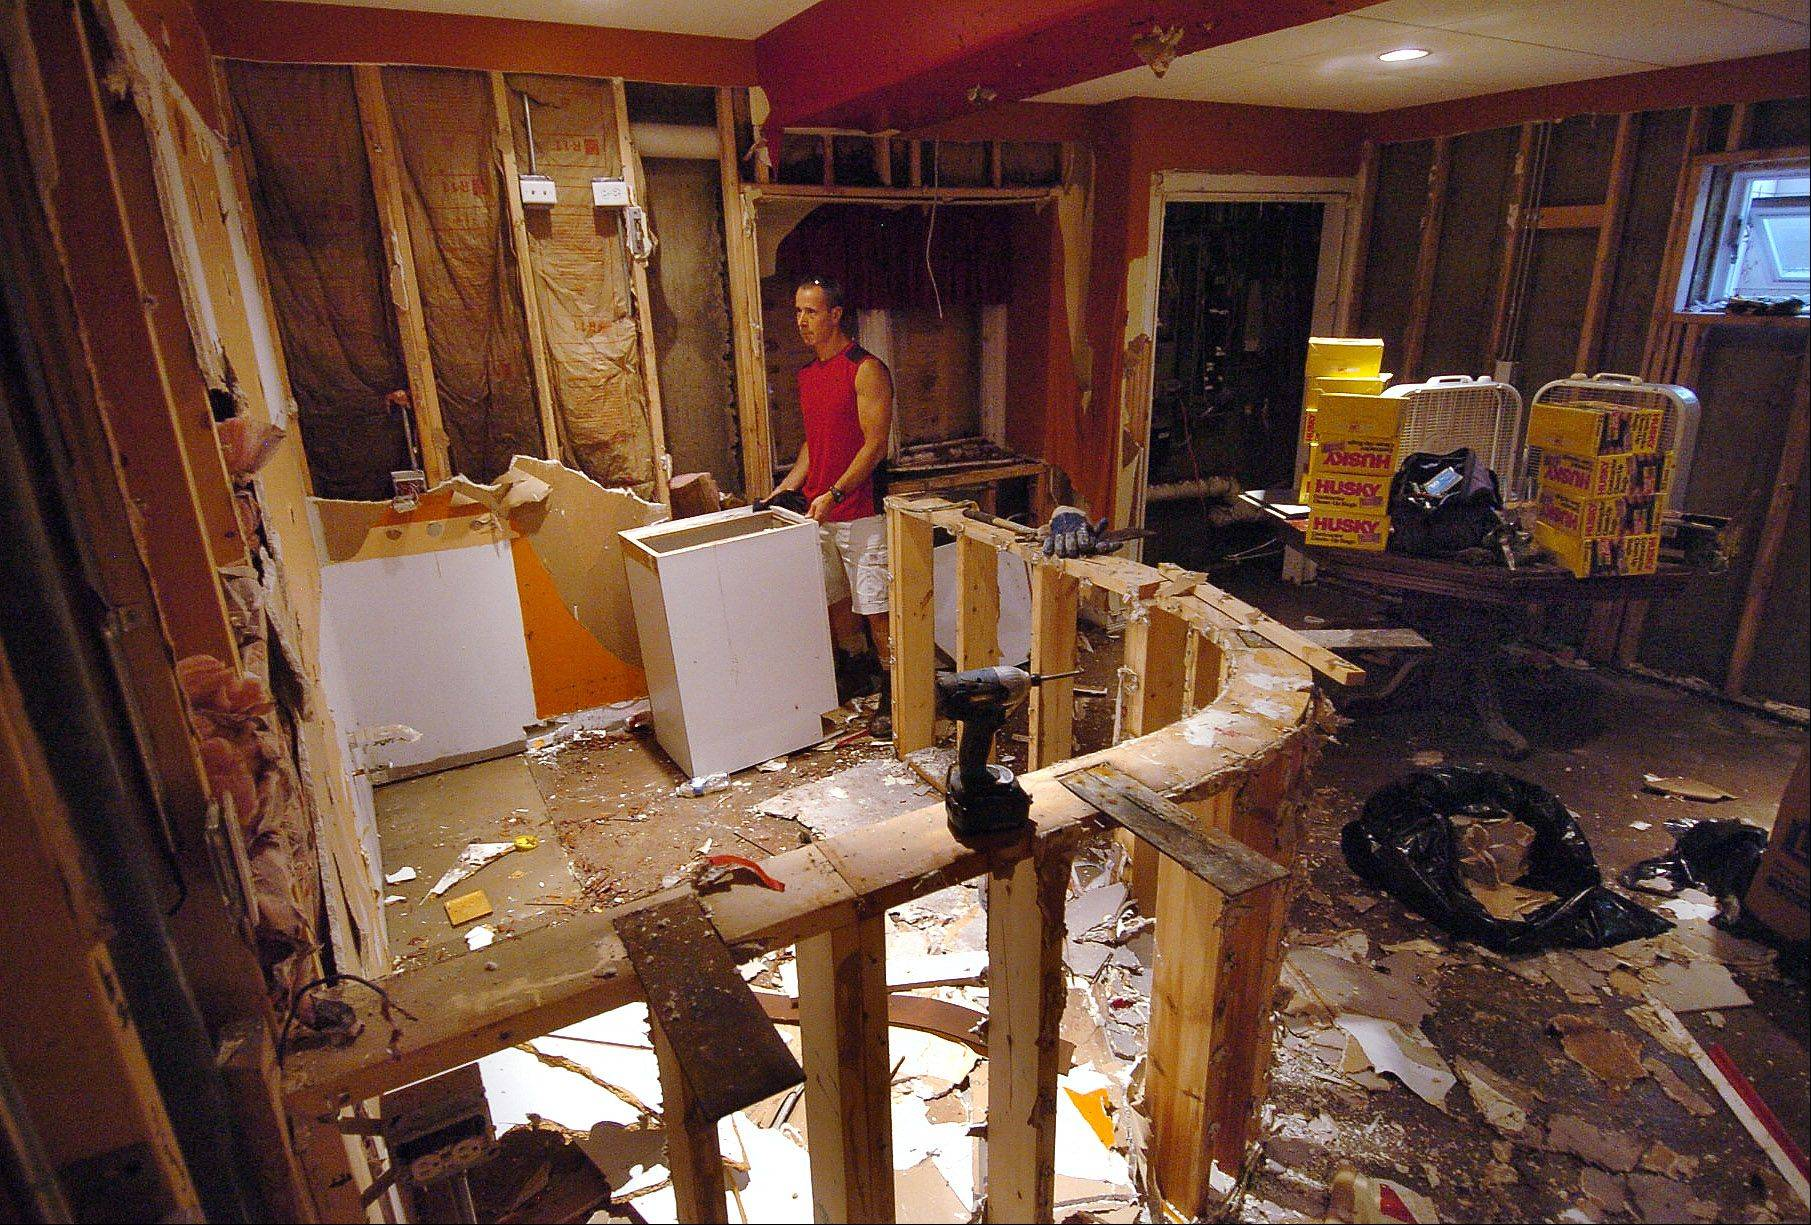 Mike Donner of Arlington Heights clears out some of the flood damage to his basement.